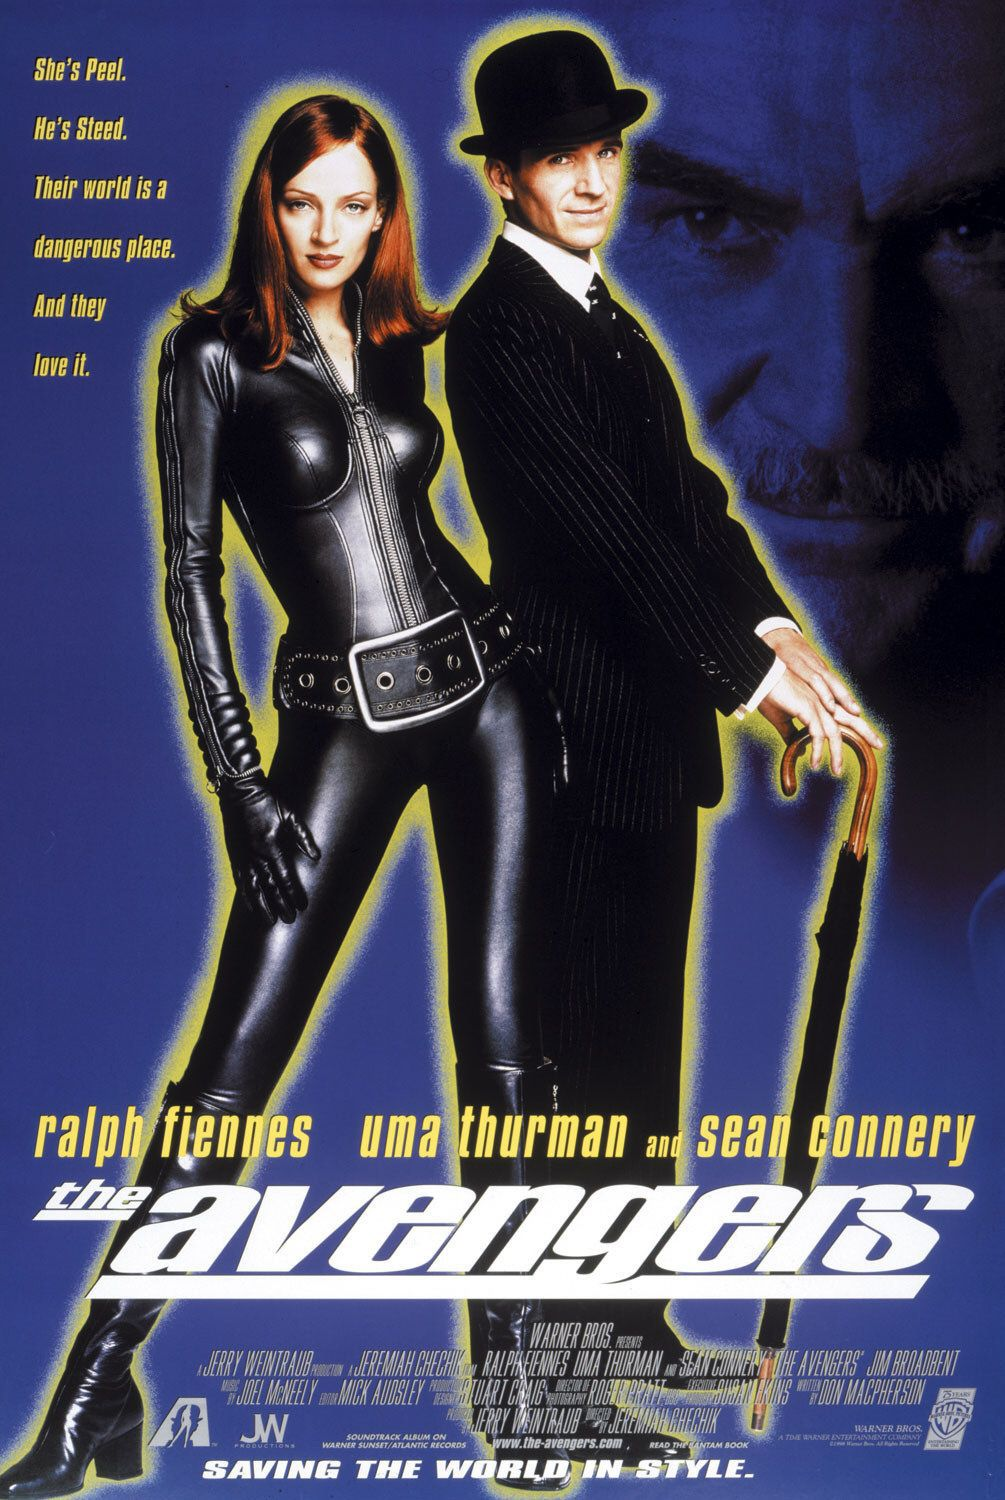 Film poster - The Avengers - Spy story con Ralph Fiennes e Uma Thurman